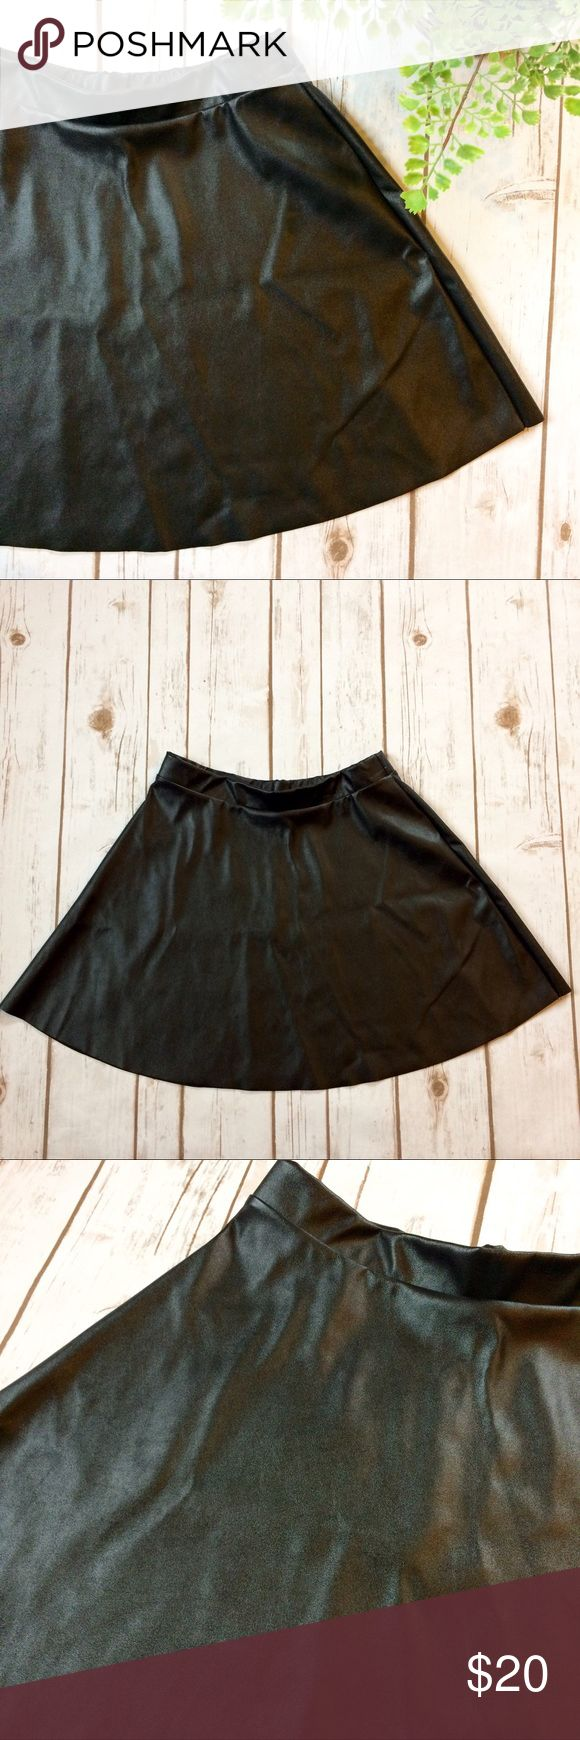 "Faux Leather Circle A Line Skirt Super cute and trendy for spring! Pair with booties, wedges, or sandals to dress up or down. Elastic waistband with faux leather fabric flowing down. Waist: 26"" - 30"" Length: 15.5"" Fabric Content: 100% Polyester Peach Royal Skirts Mini"